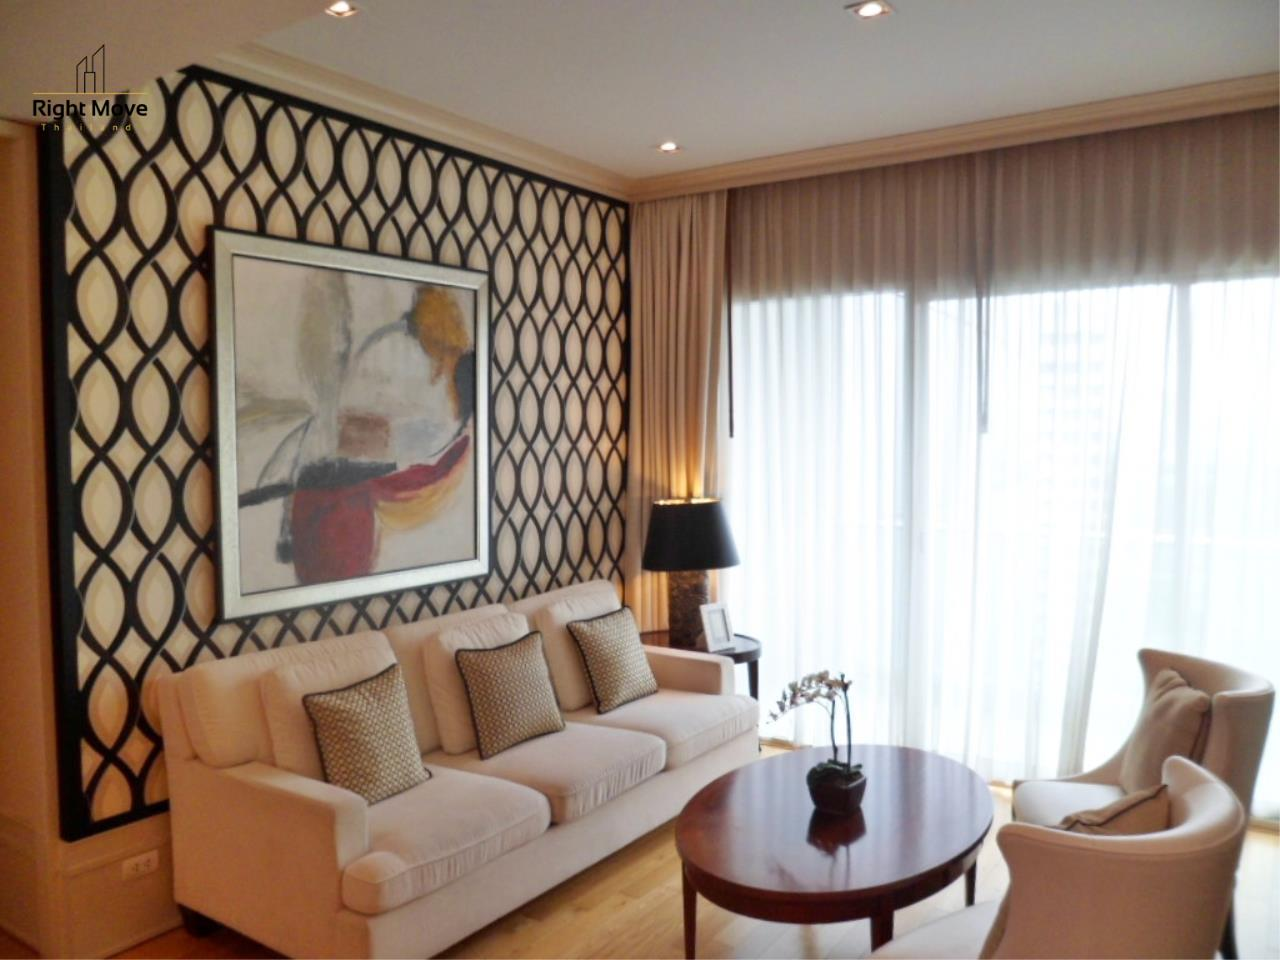 Right Move Thailand Agency's CS2375 Millennium Residence for sale 26,000,000 THB - 3 Bedrooms - 144.89 sqm. 1